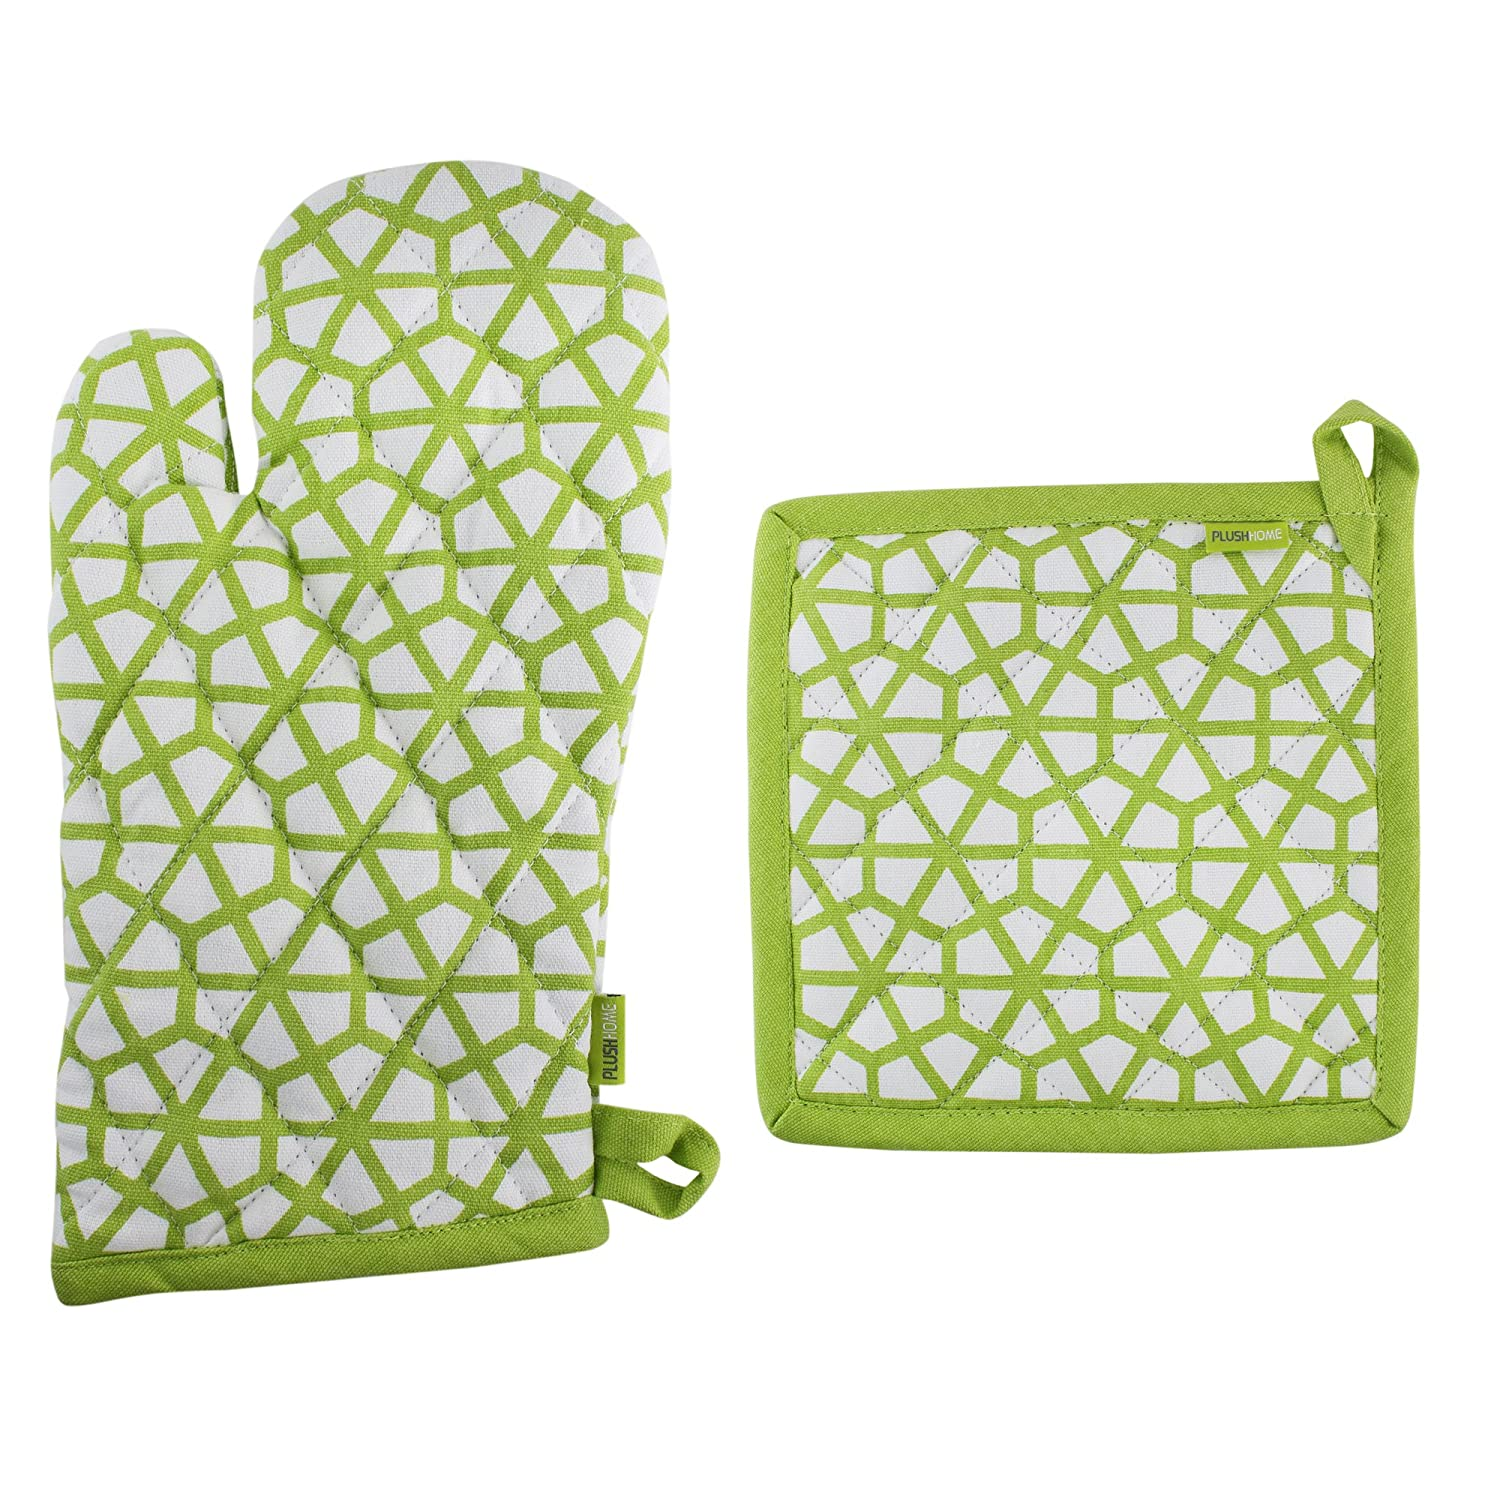 "Pot Holder And Oven Mitt Set, 100% Cotton, Set of 1 Oven mitten of Size 7""X12 Inch & 1 Potholder of Size 8""X8 Inch, Eco - Friendly & Safe, Green, The Hive in Lime Design for Kitchen"